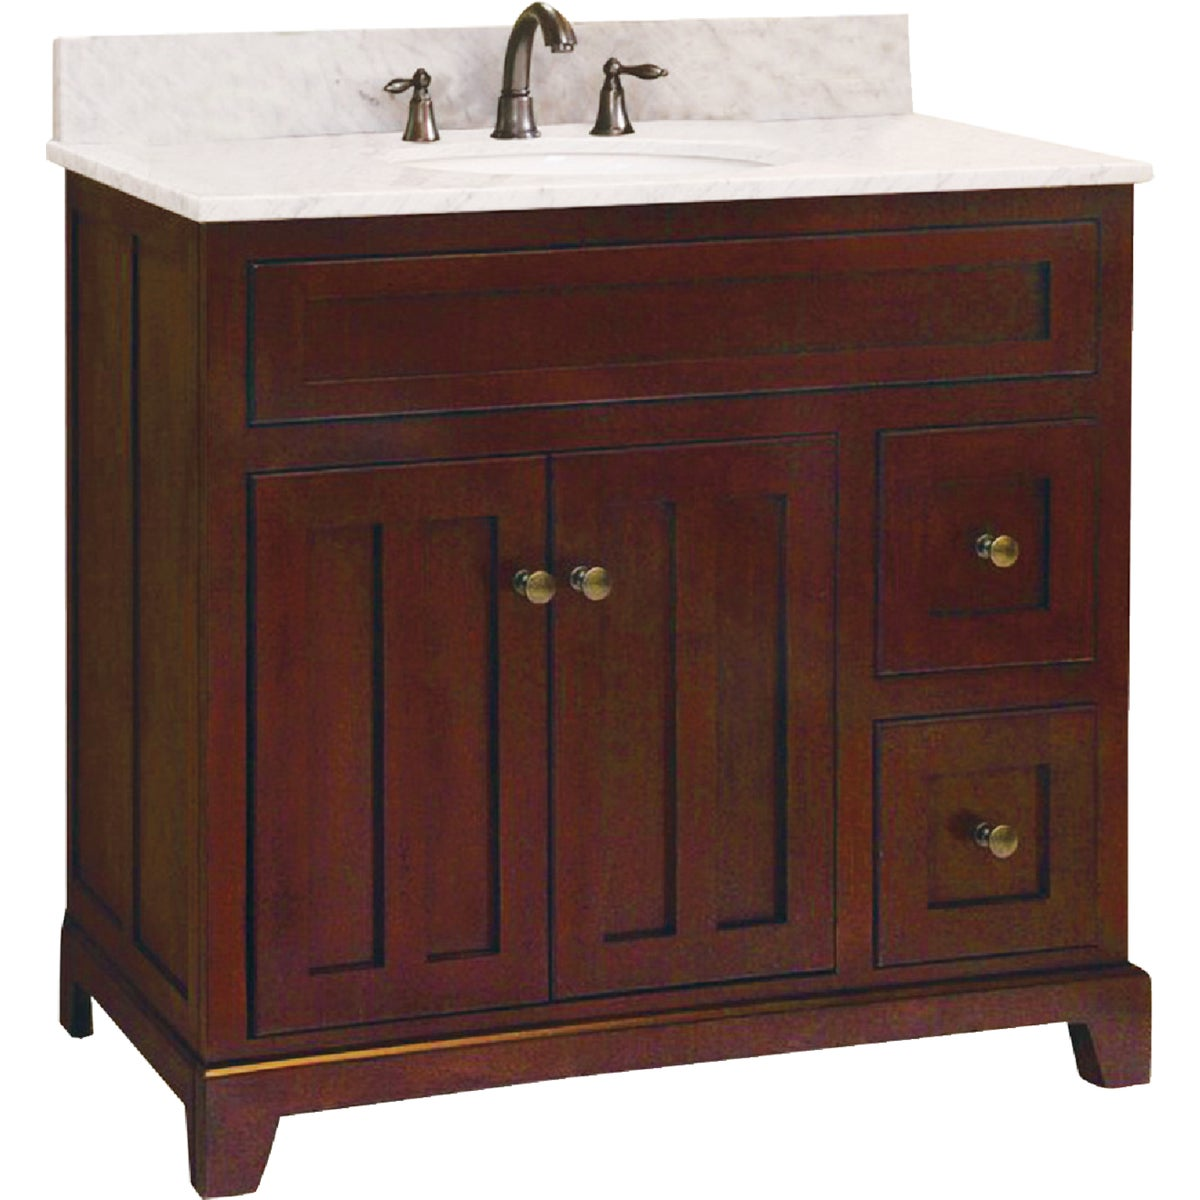 "36"" GRAND HAVEN VANITY - GH3621D by Sunnywood Products"